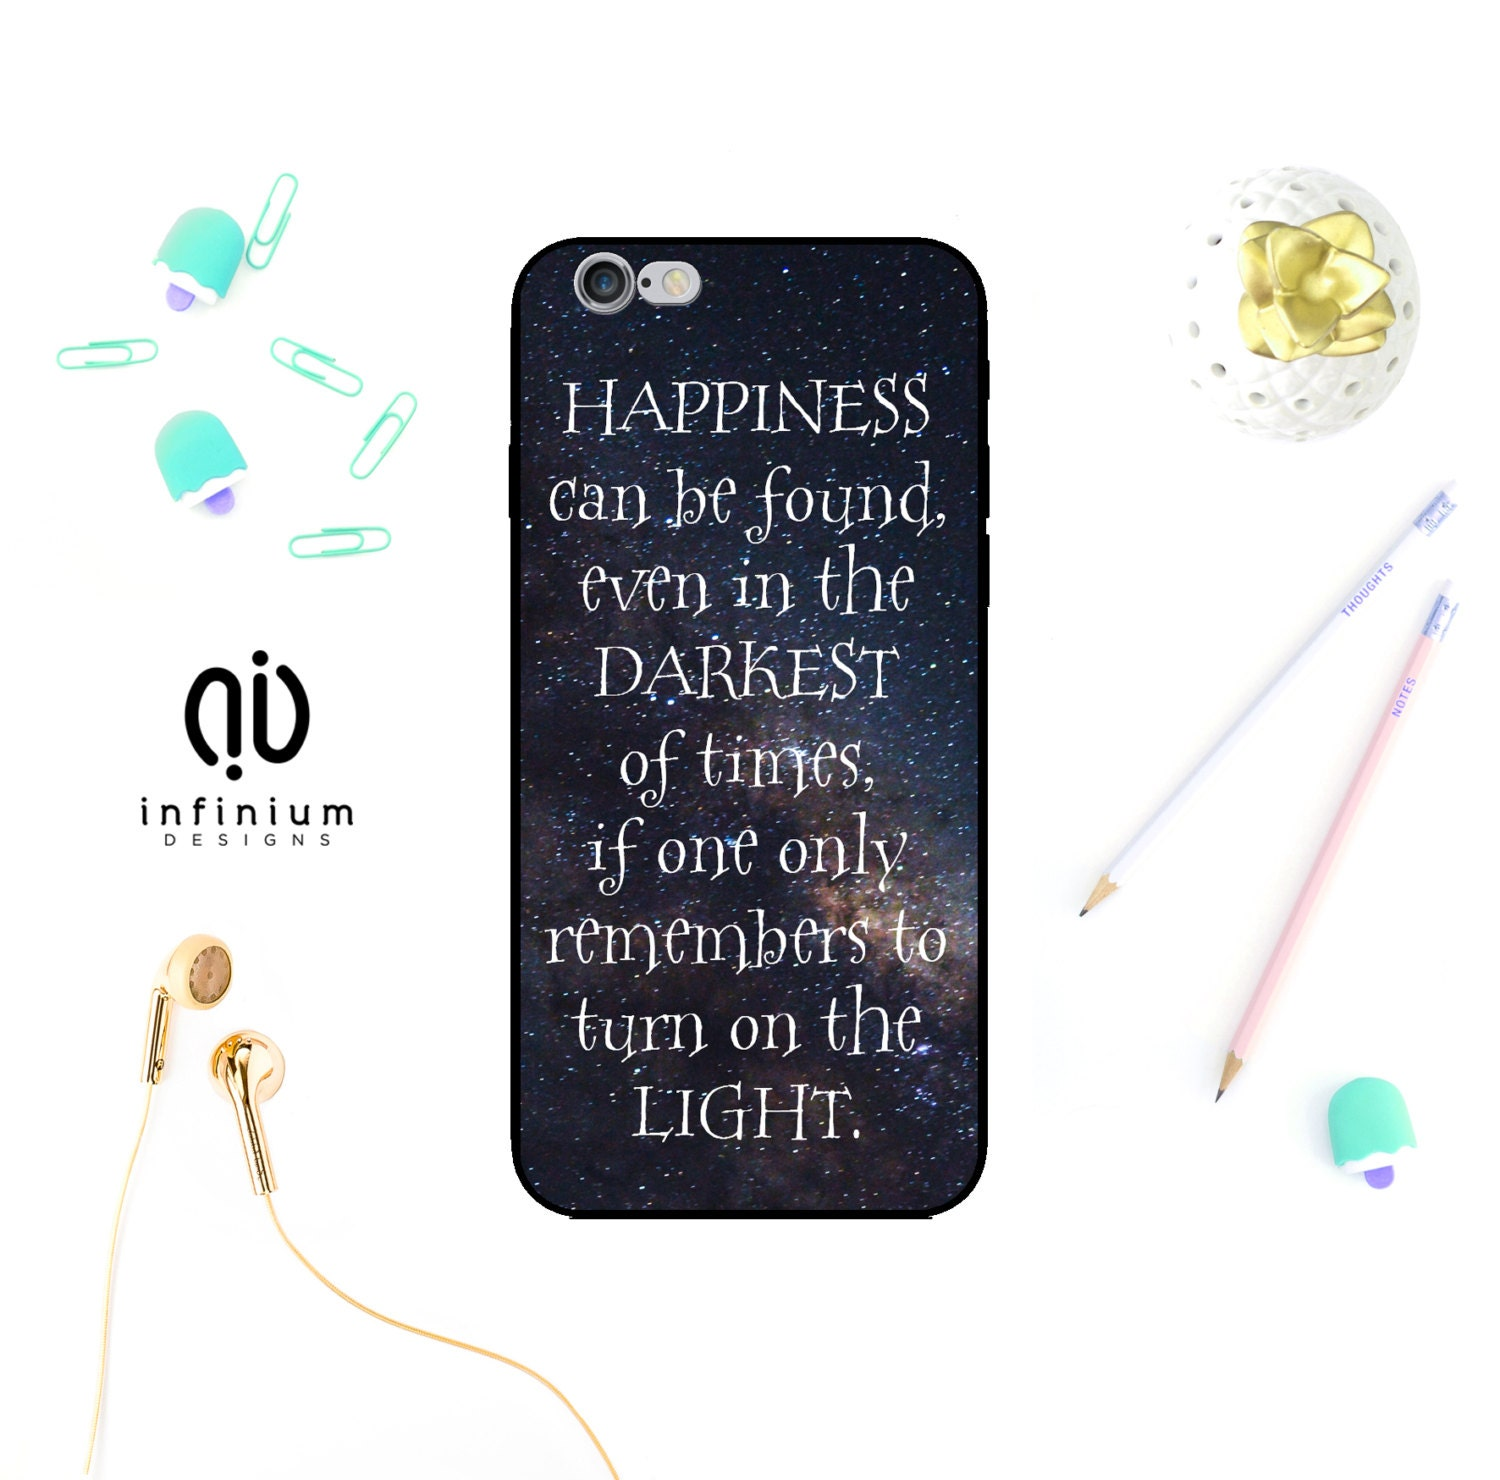 Happiness Case For iPhone 7 Samsung S7 S7 Edge S6 Samsung A5 Galaxy A3 A3 A5 Core Prime 7 Plus iPhone 6S SE 5S  Touch 6